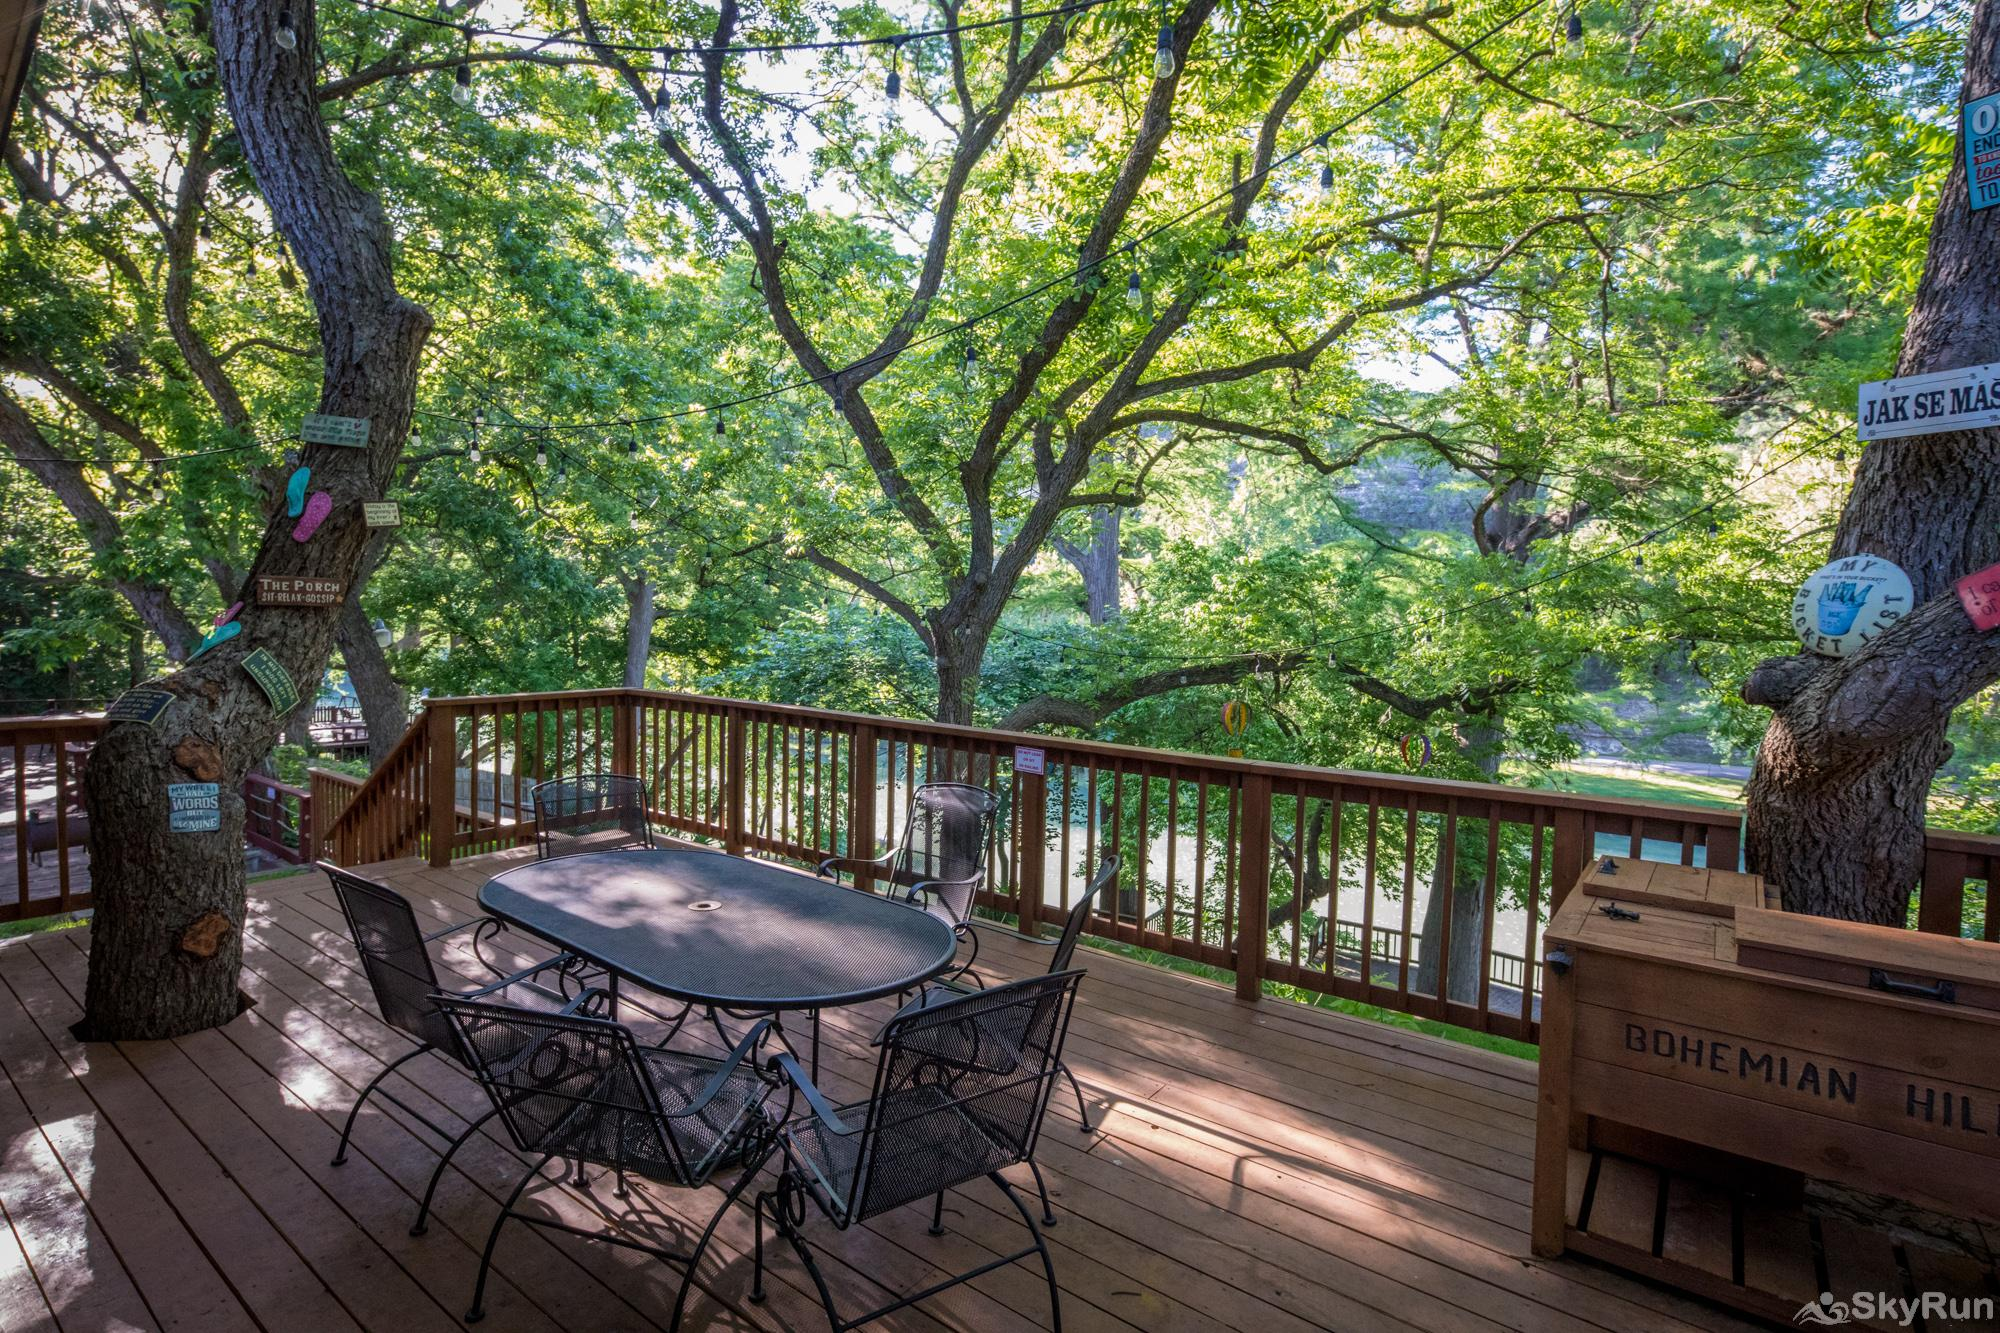 BOHEMIAN HILL Beautiful Deck Overlooking the Guadalupe River